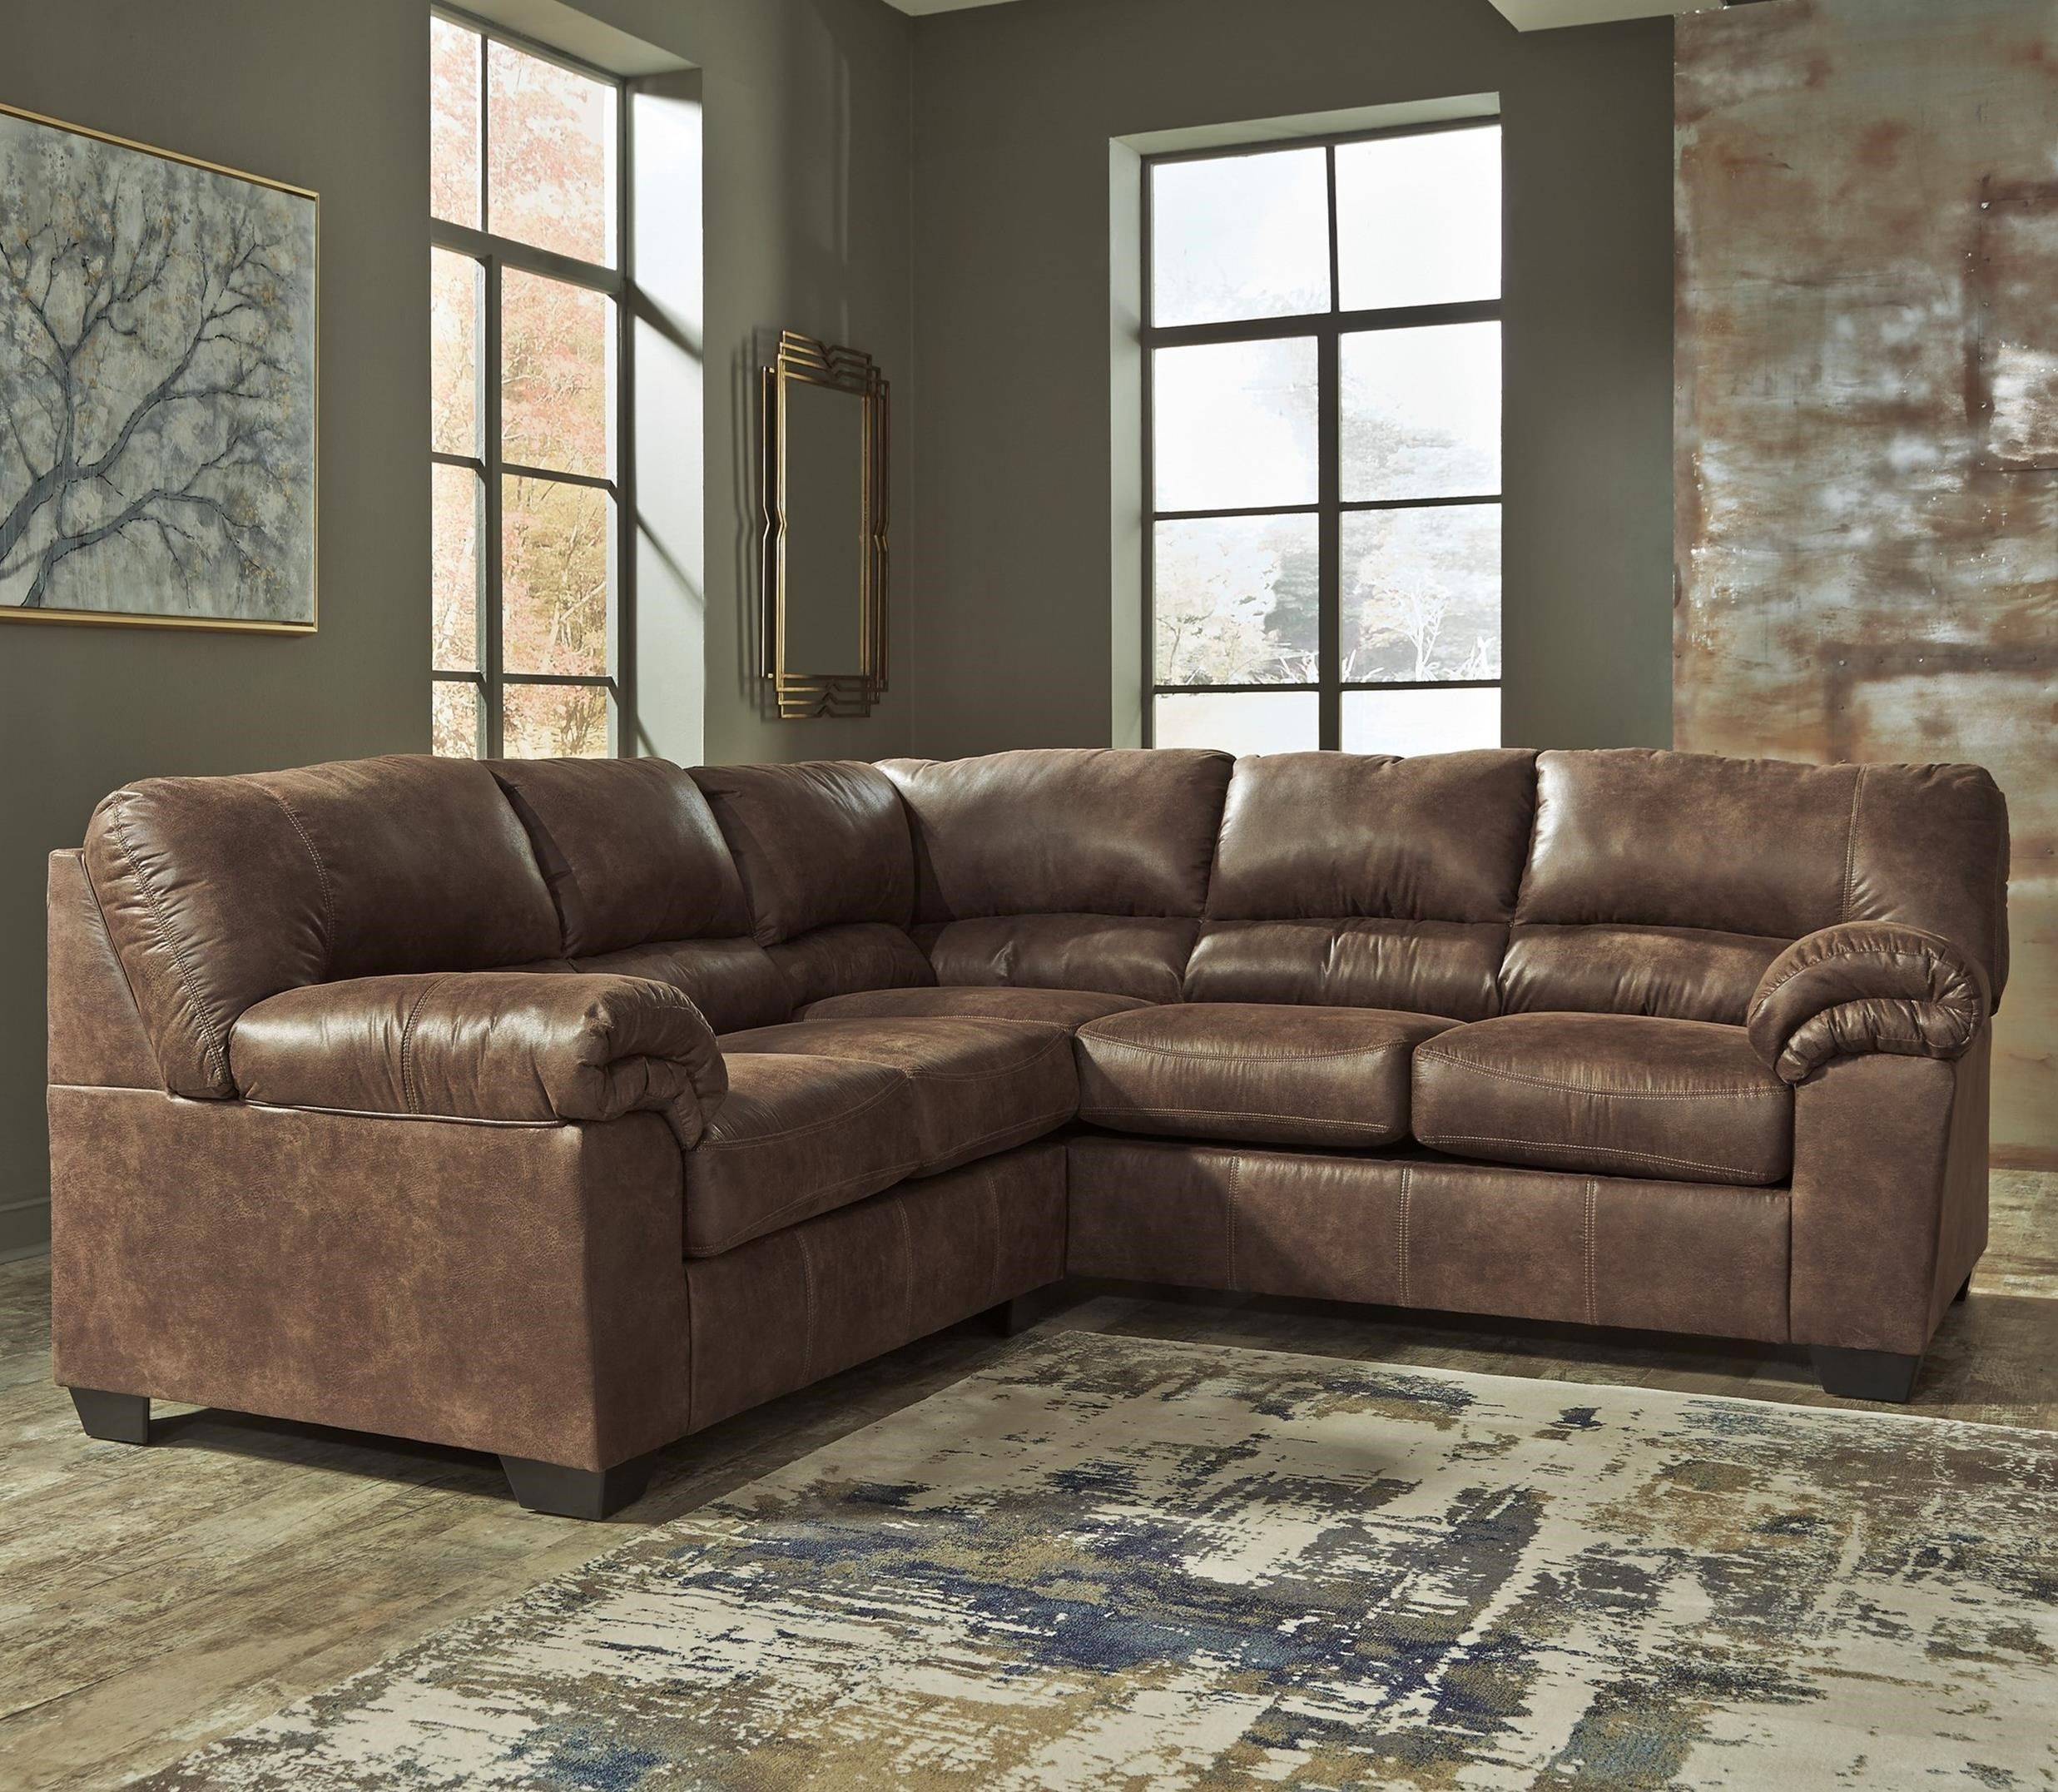 Bladen 2-Piece Faux Leather Sectional by Signature Design by Ashley at Wilson's Furniture | Fabric sectional sofas, Faux leather sectional, Furniture